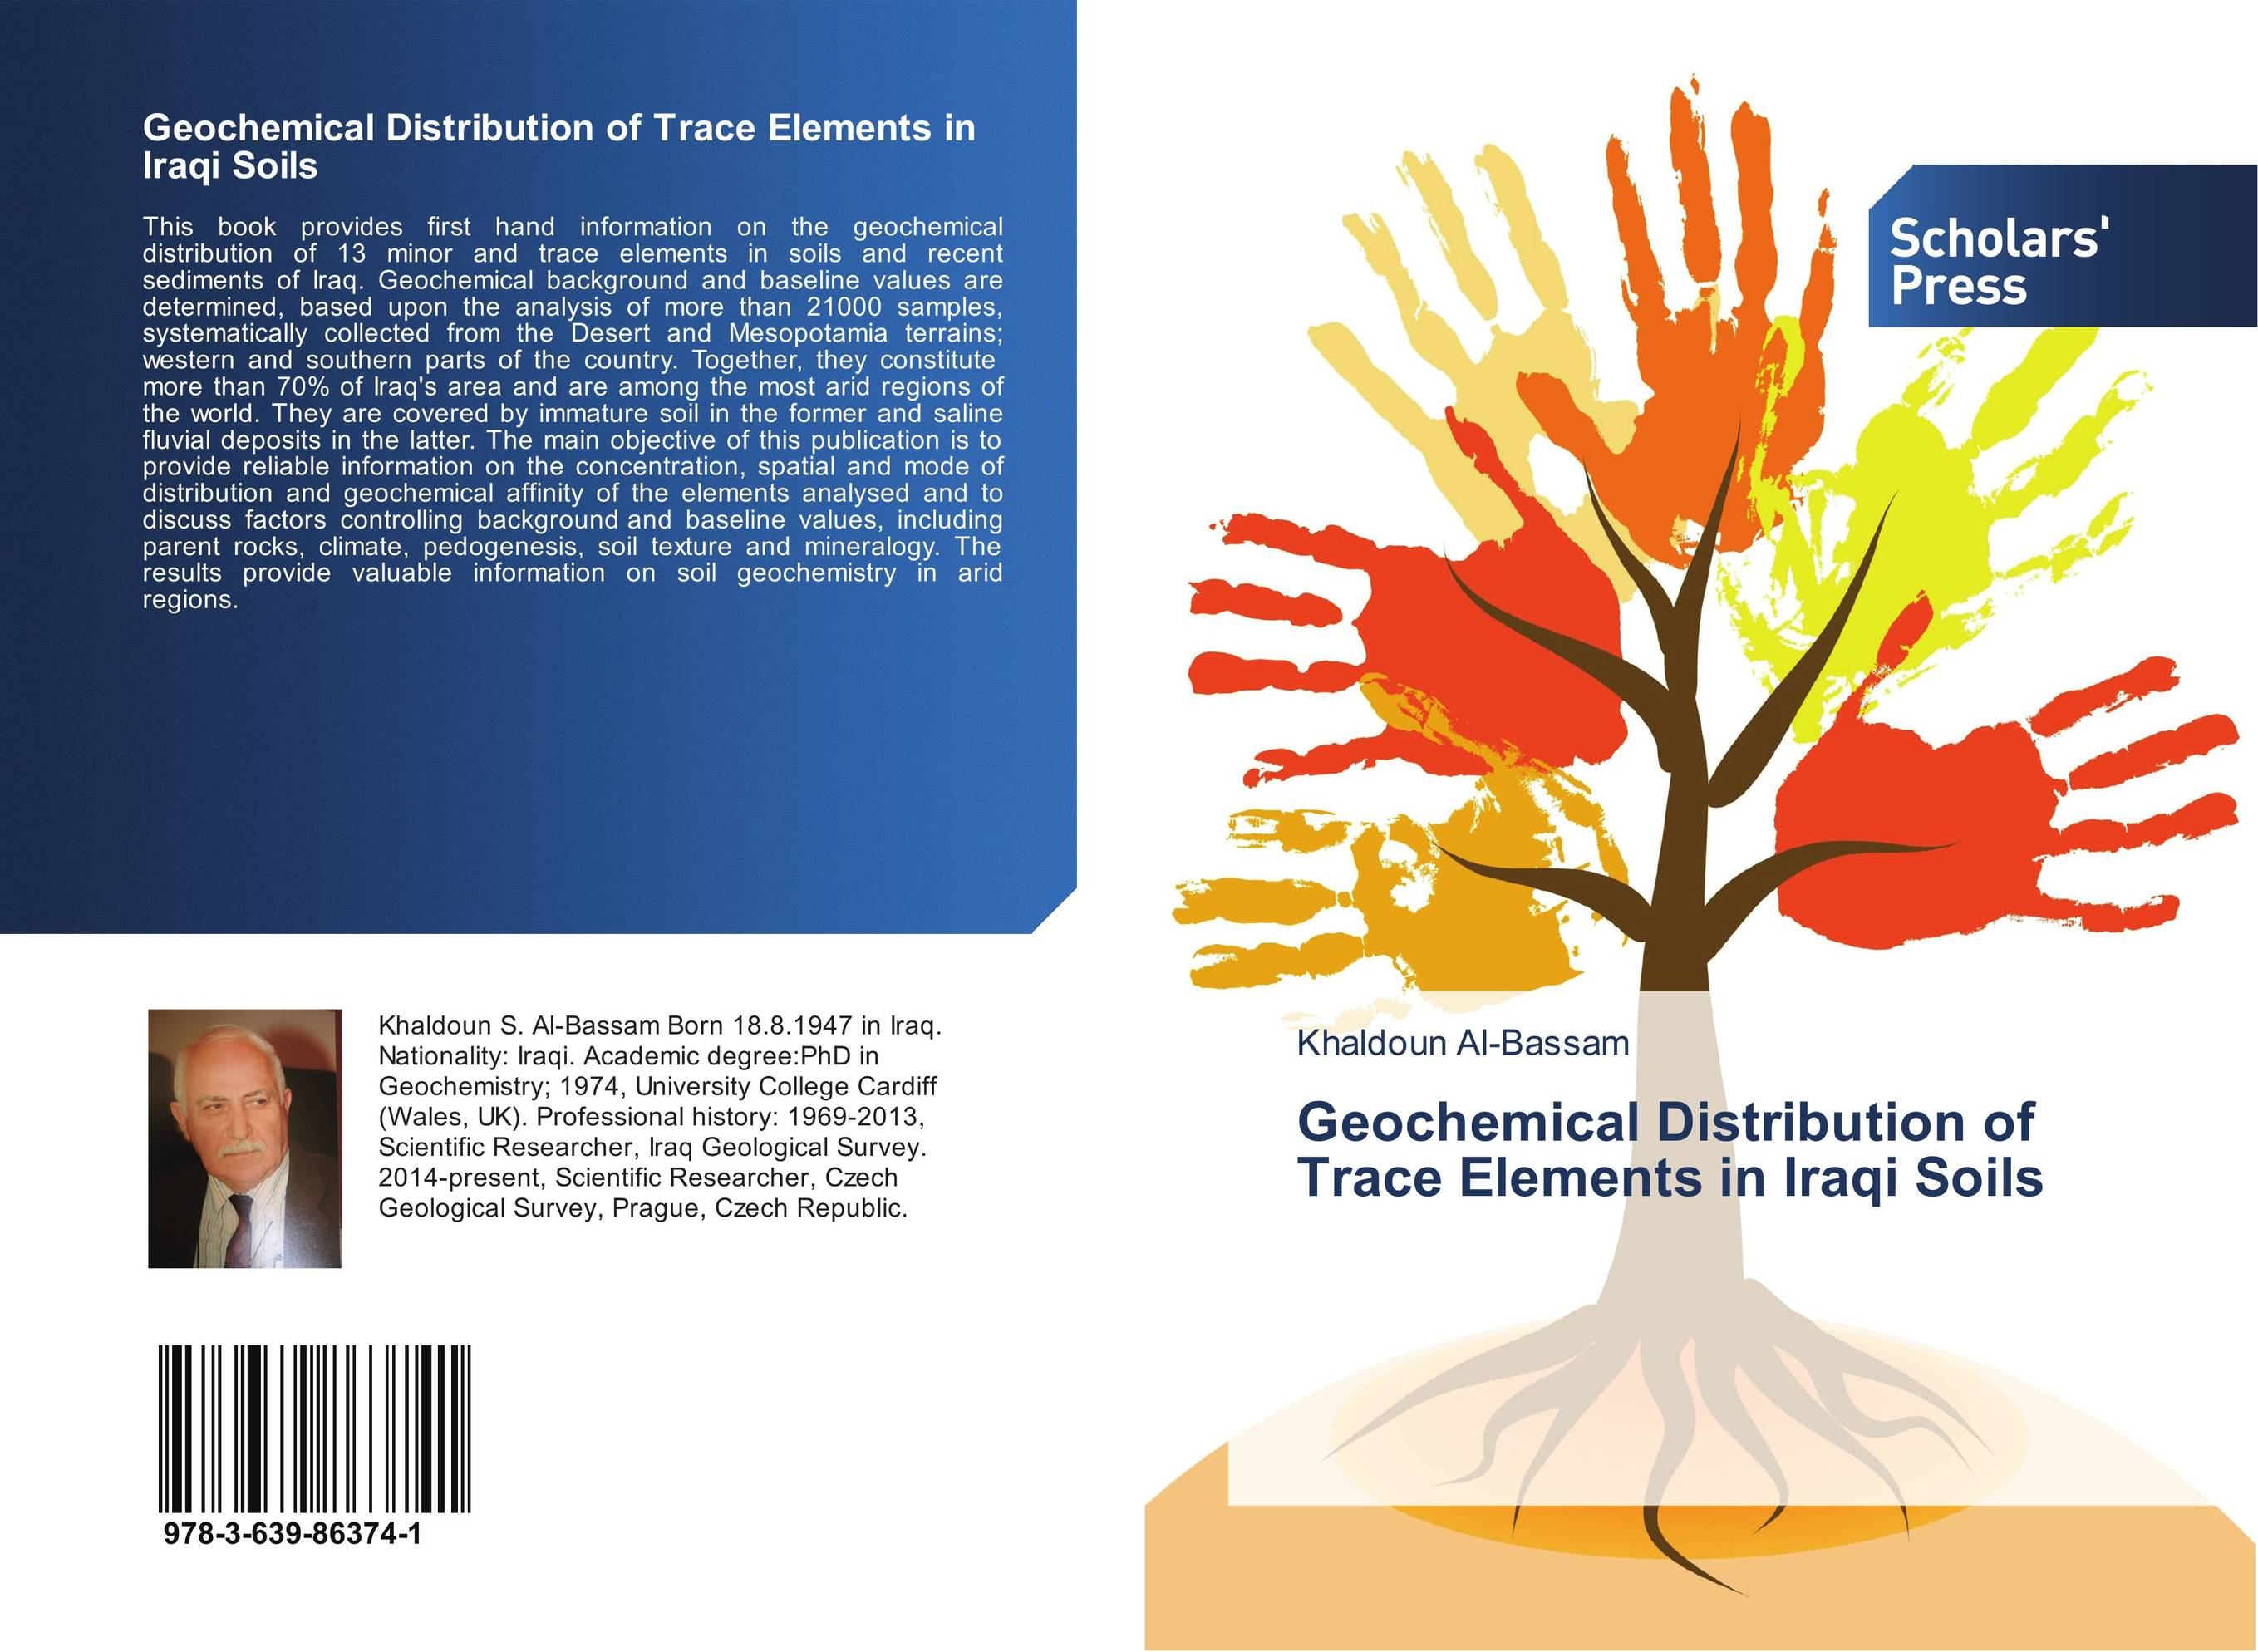 Geochemical Distribution of Trace Elements in Iraqi Soils on the distribution of information structures and focal points